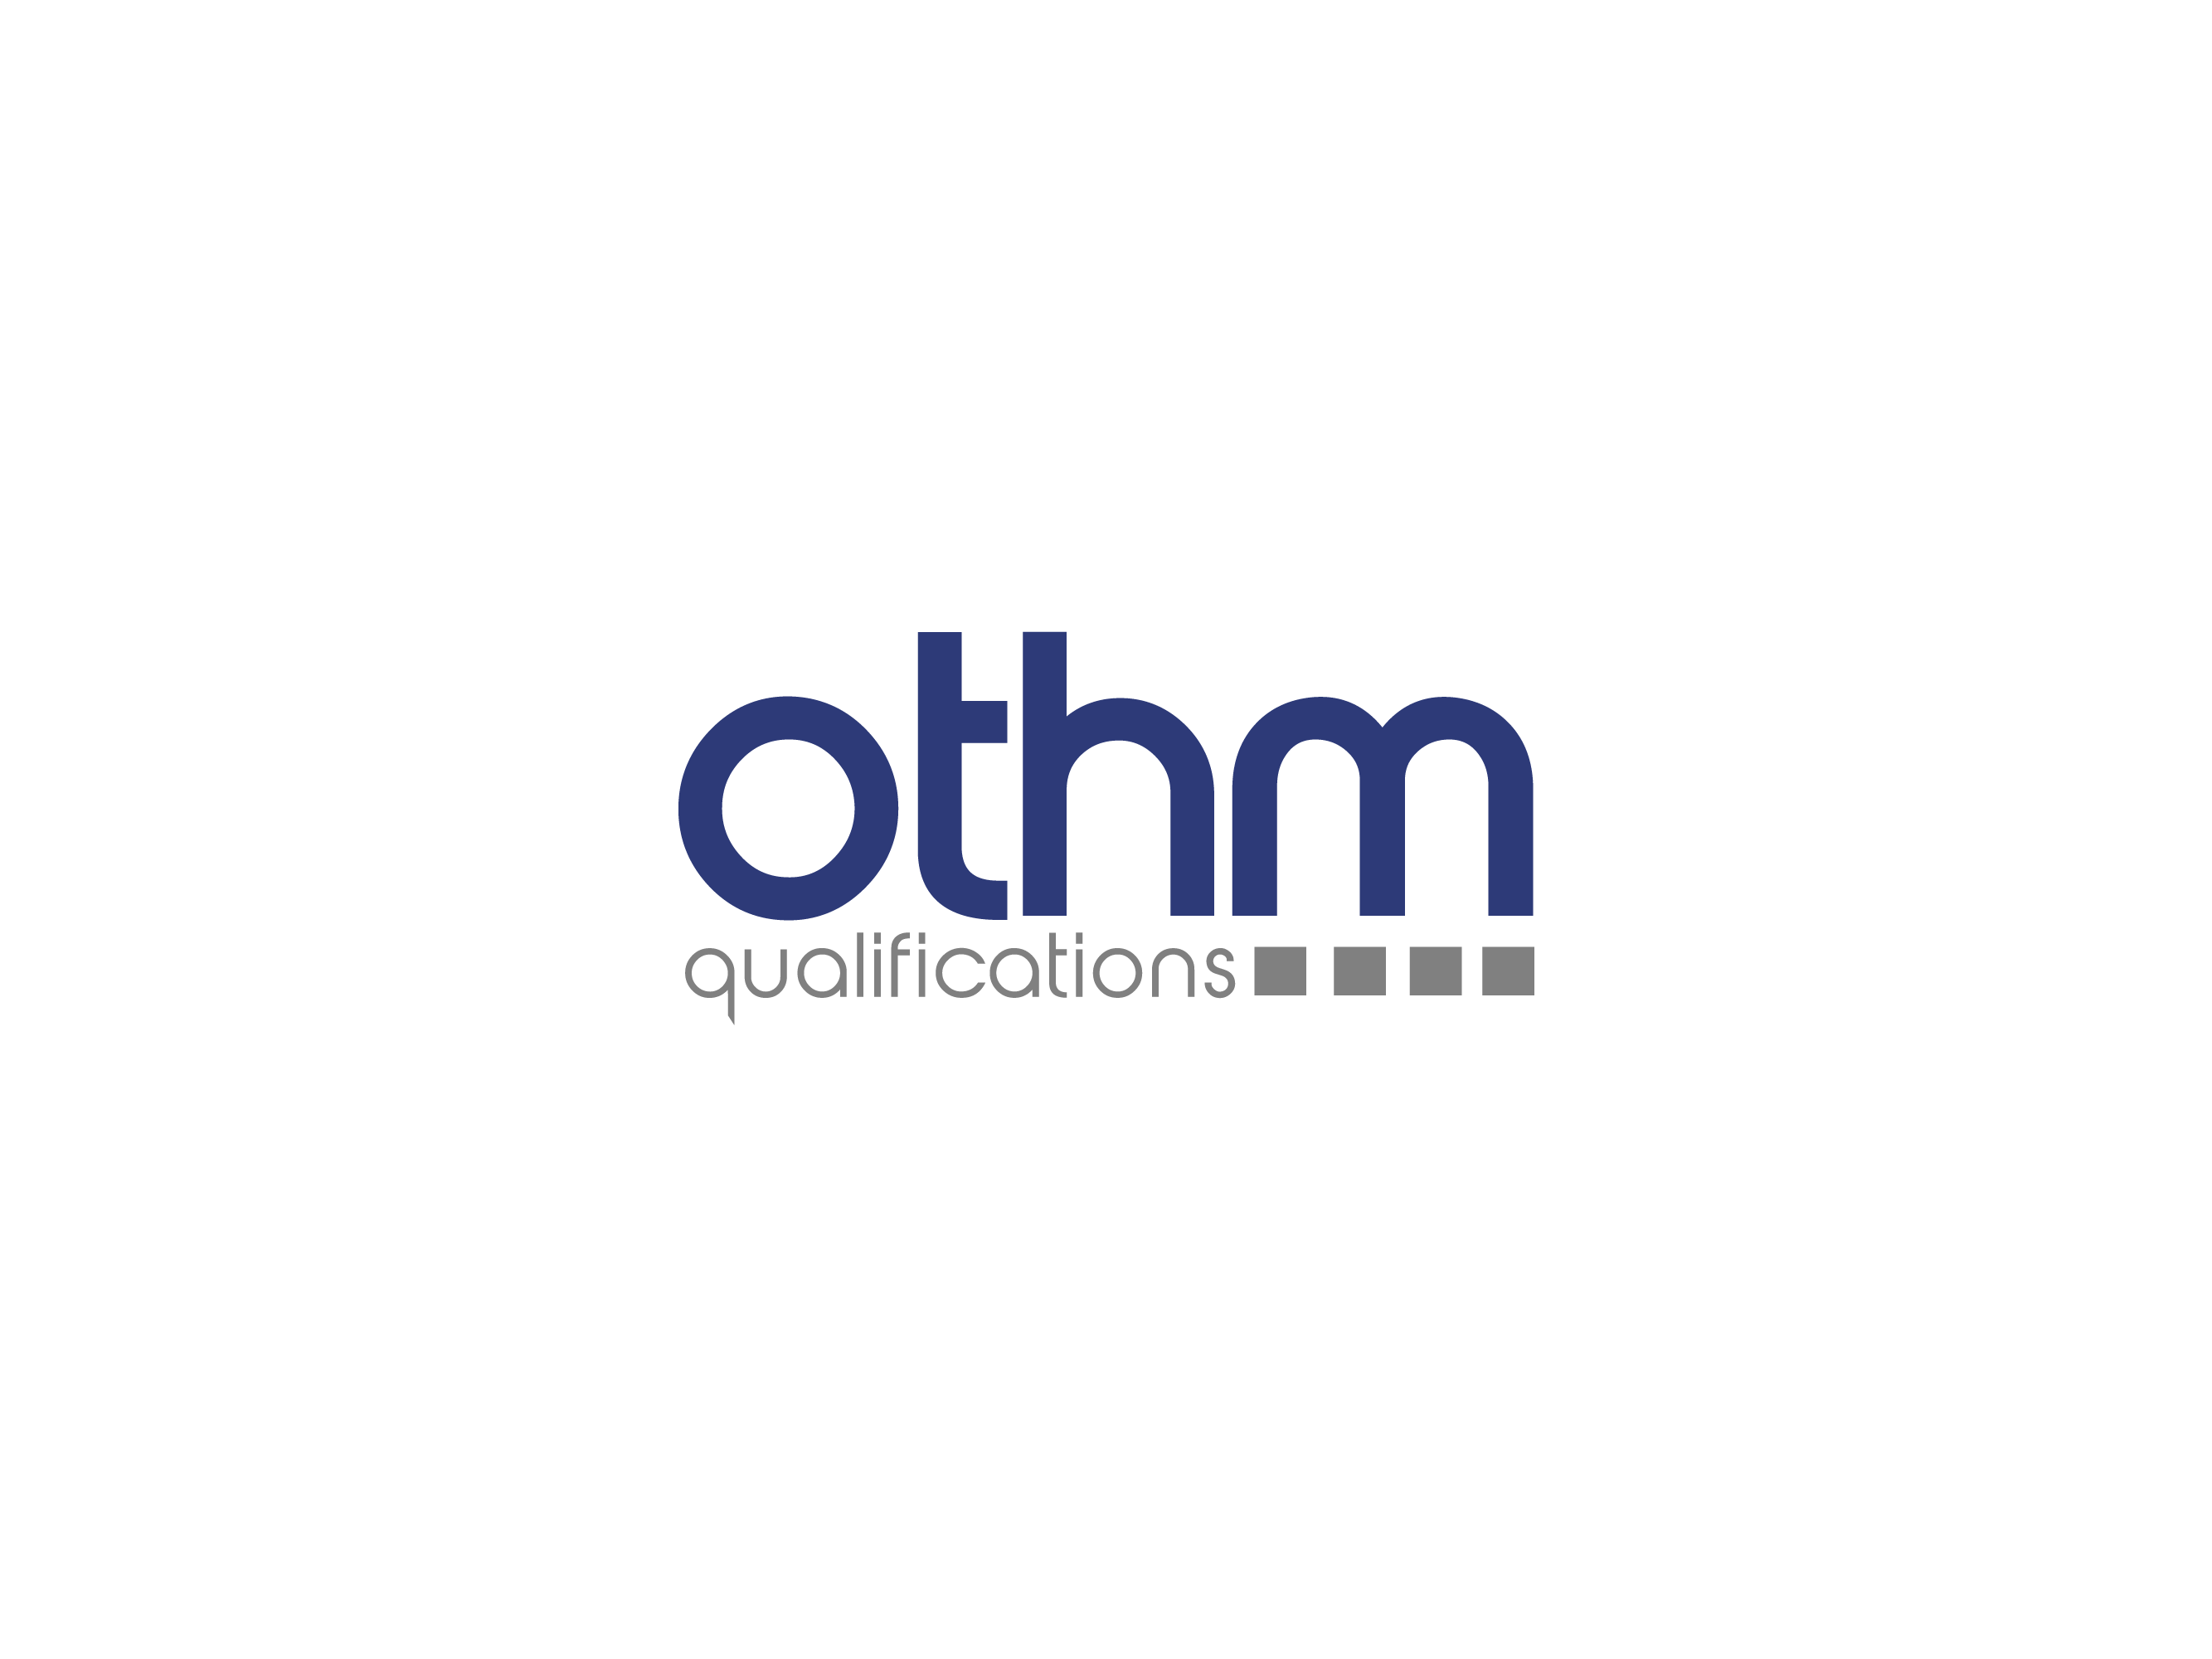 OTHM Qualifications logo